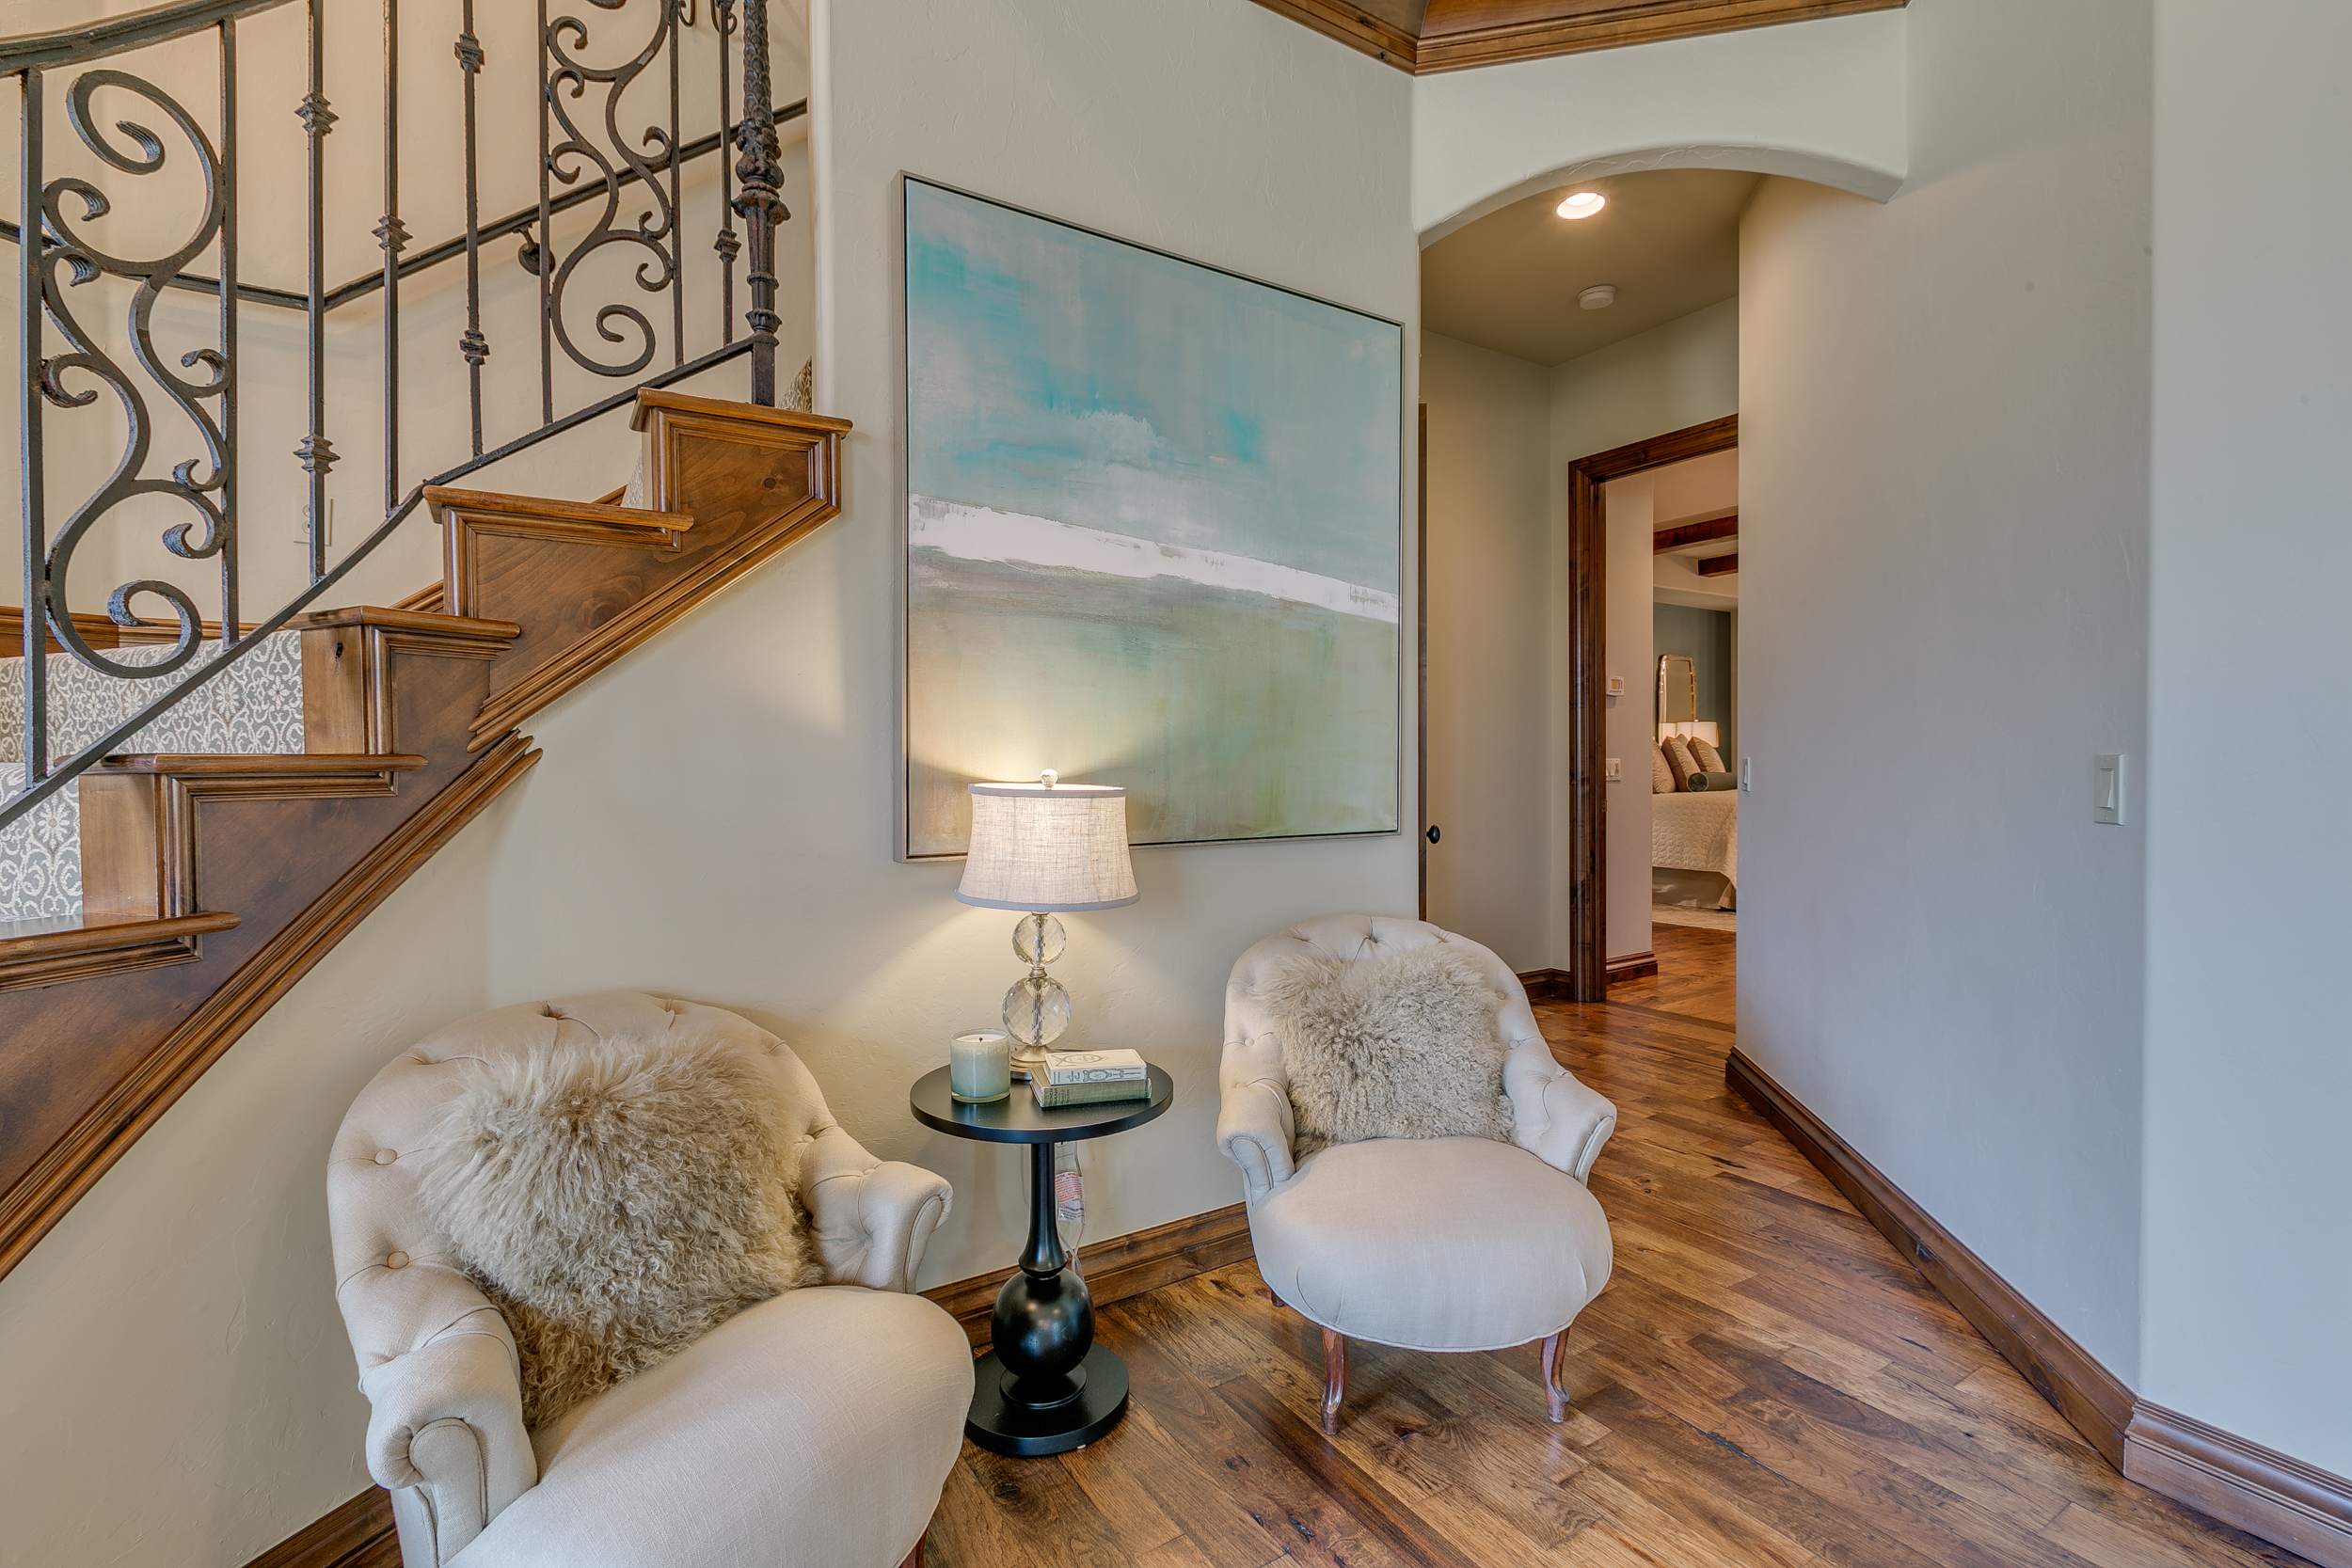 A-Line+Designs_+OK+Real+Estate+Photography_DAYBREAK+48X48+CANVAS+MADISON+FLOAT+FRAME_APPROVED.jpg